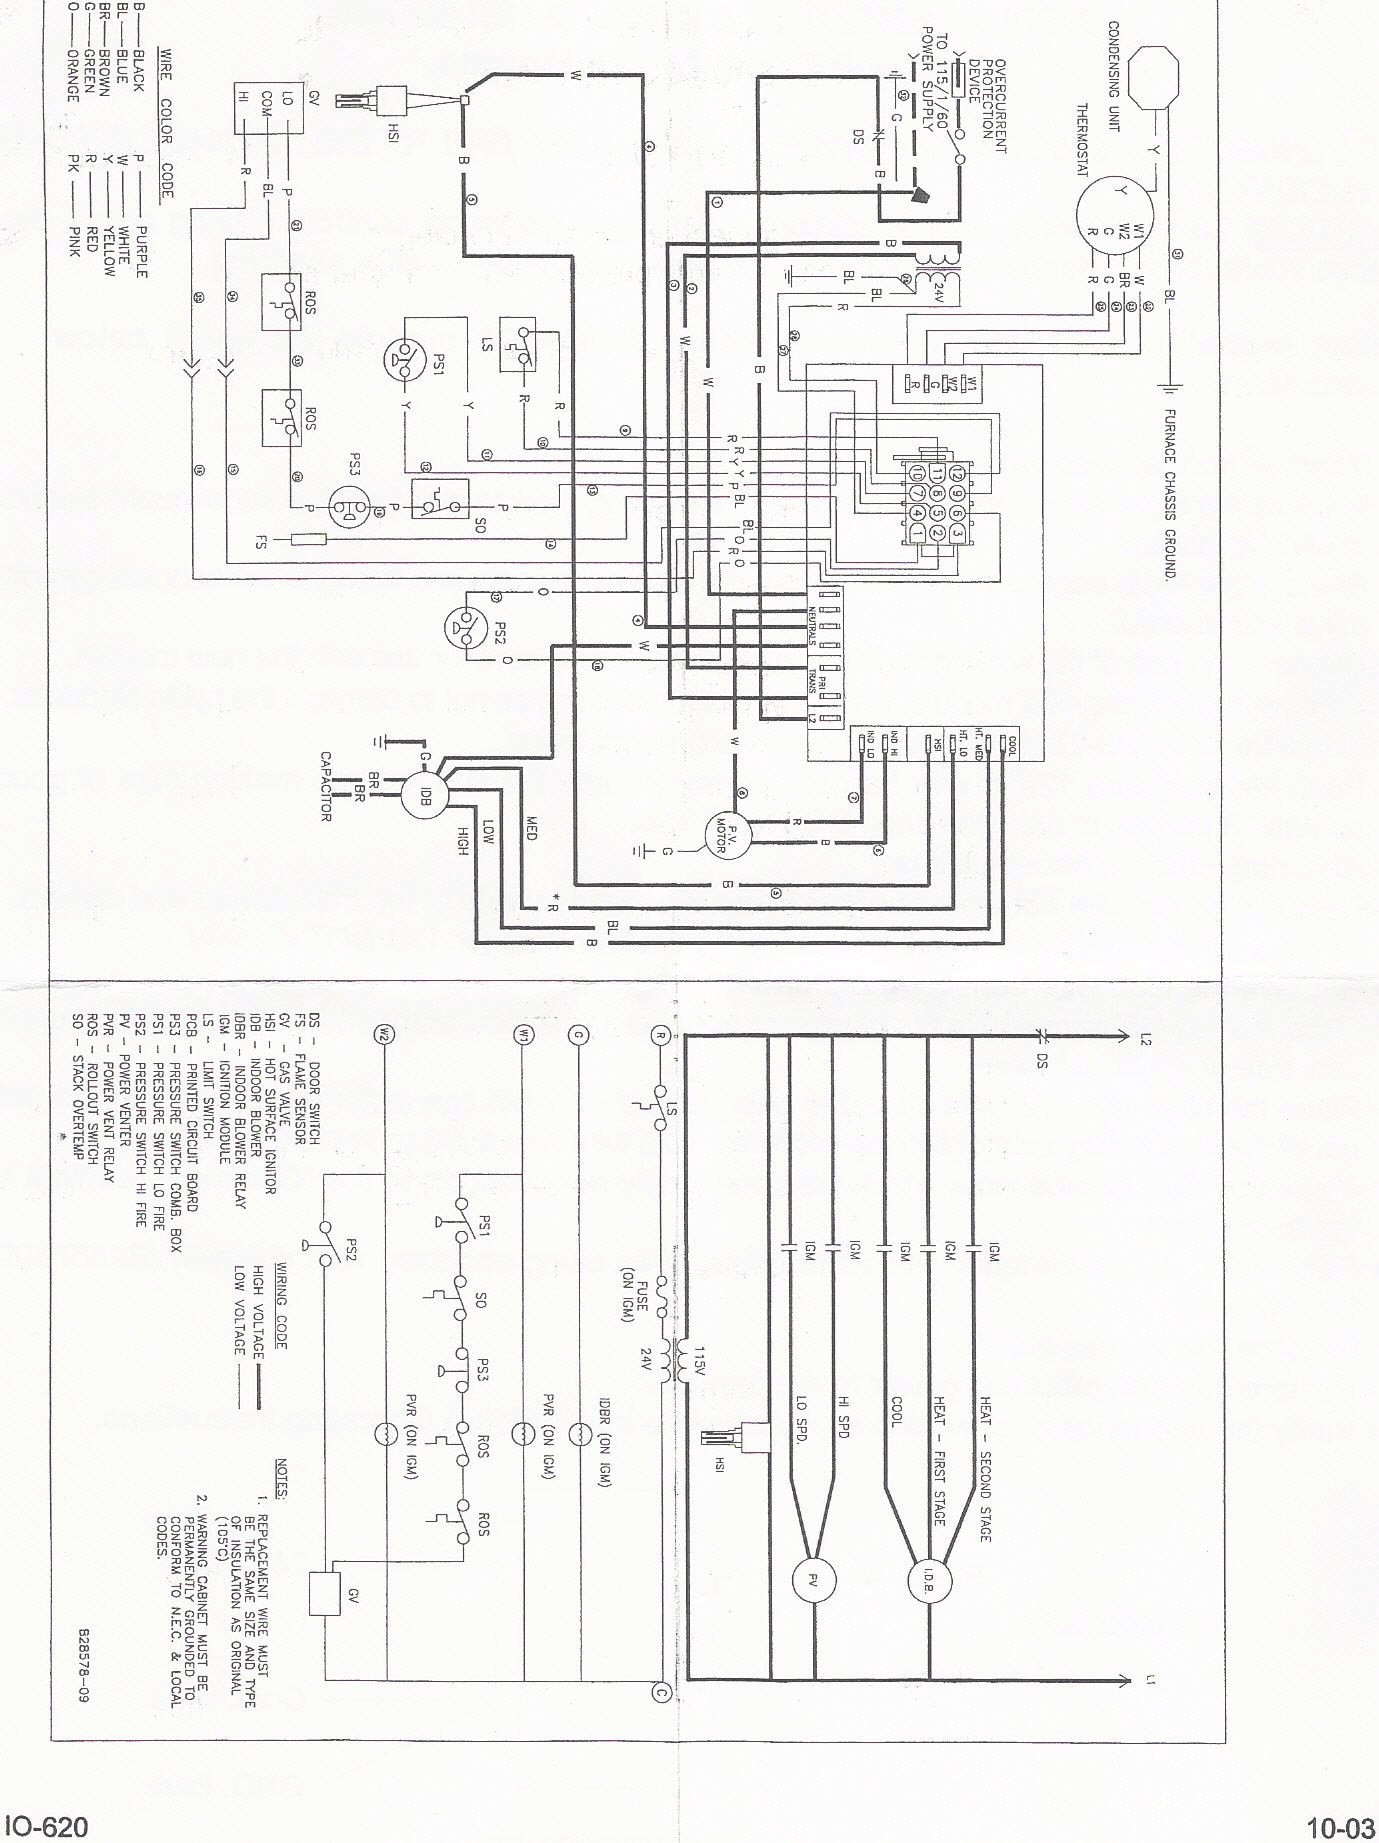 Goodman Heat Pump Package Unit Wiring Diagram Sample